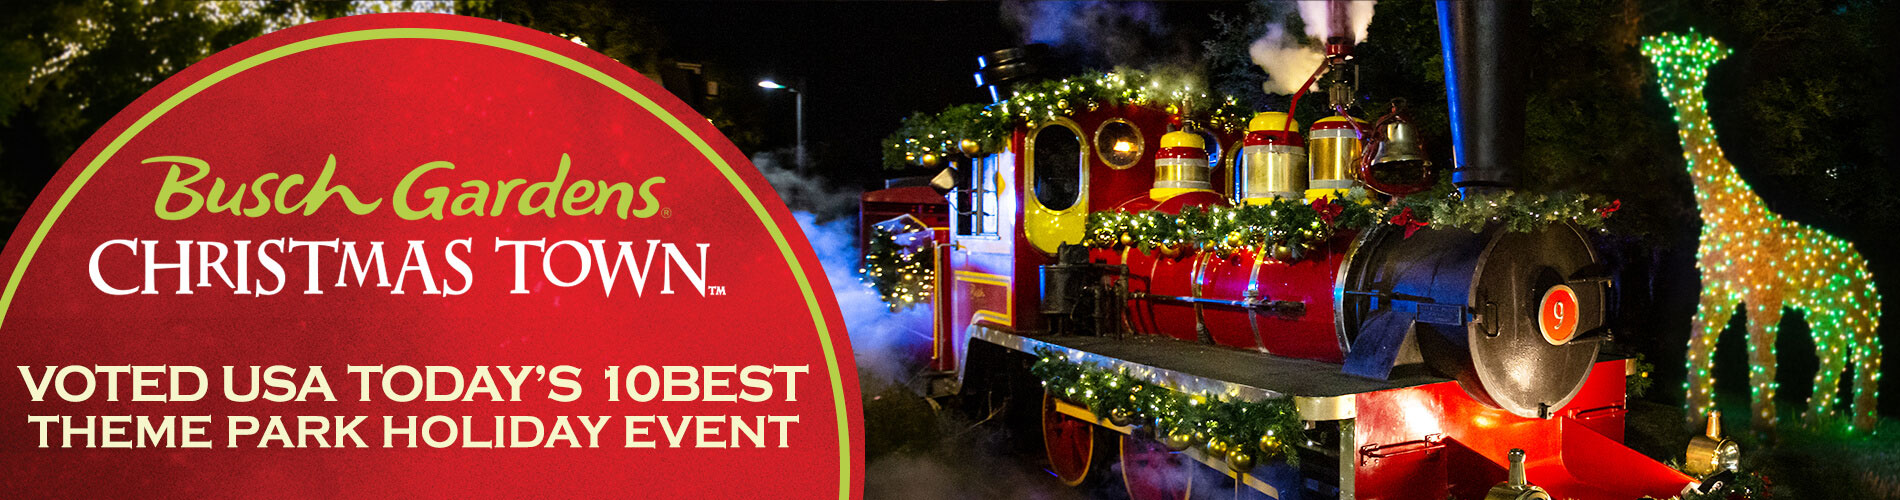 Busch Gardens Tampa Bay Christmas Town, a USA Today's 10Best Theme Park Holiday Event.